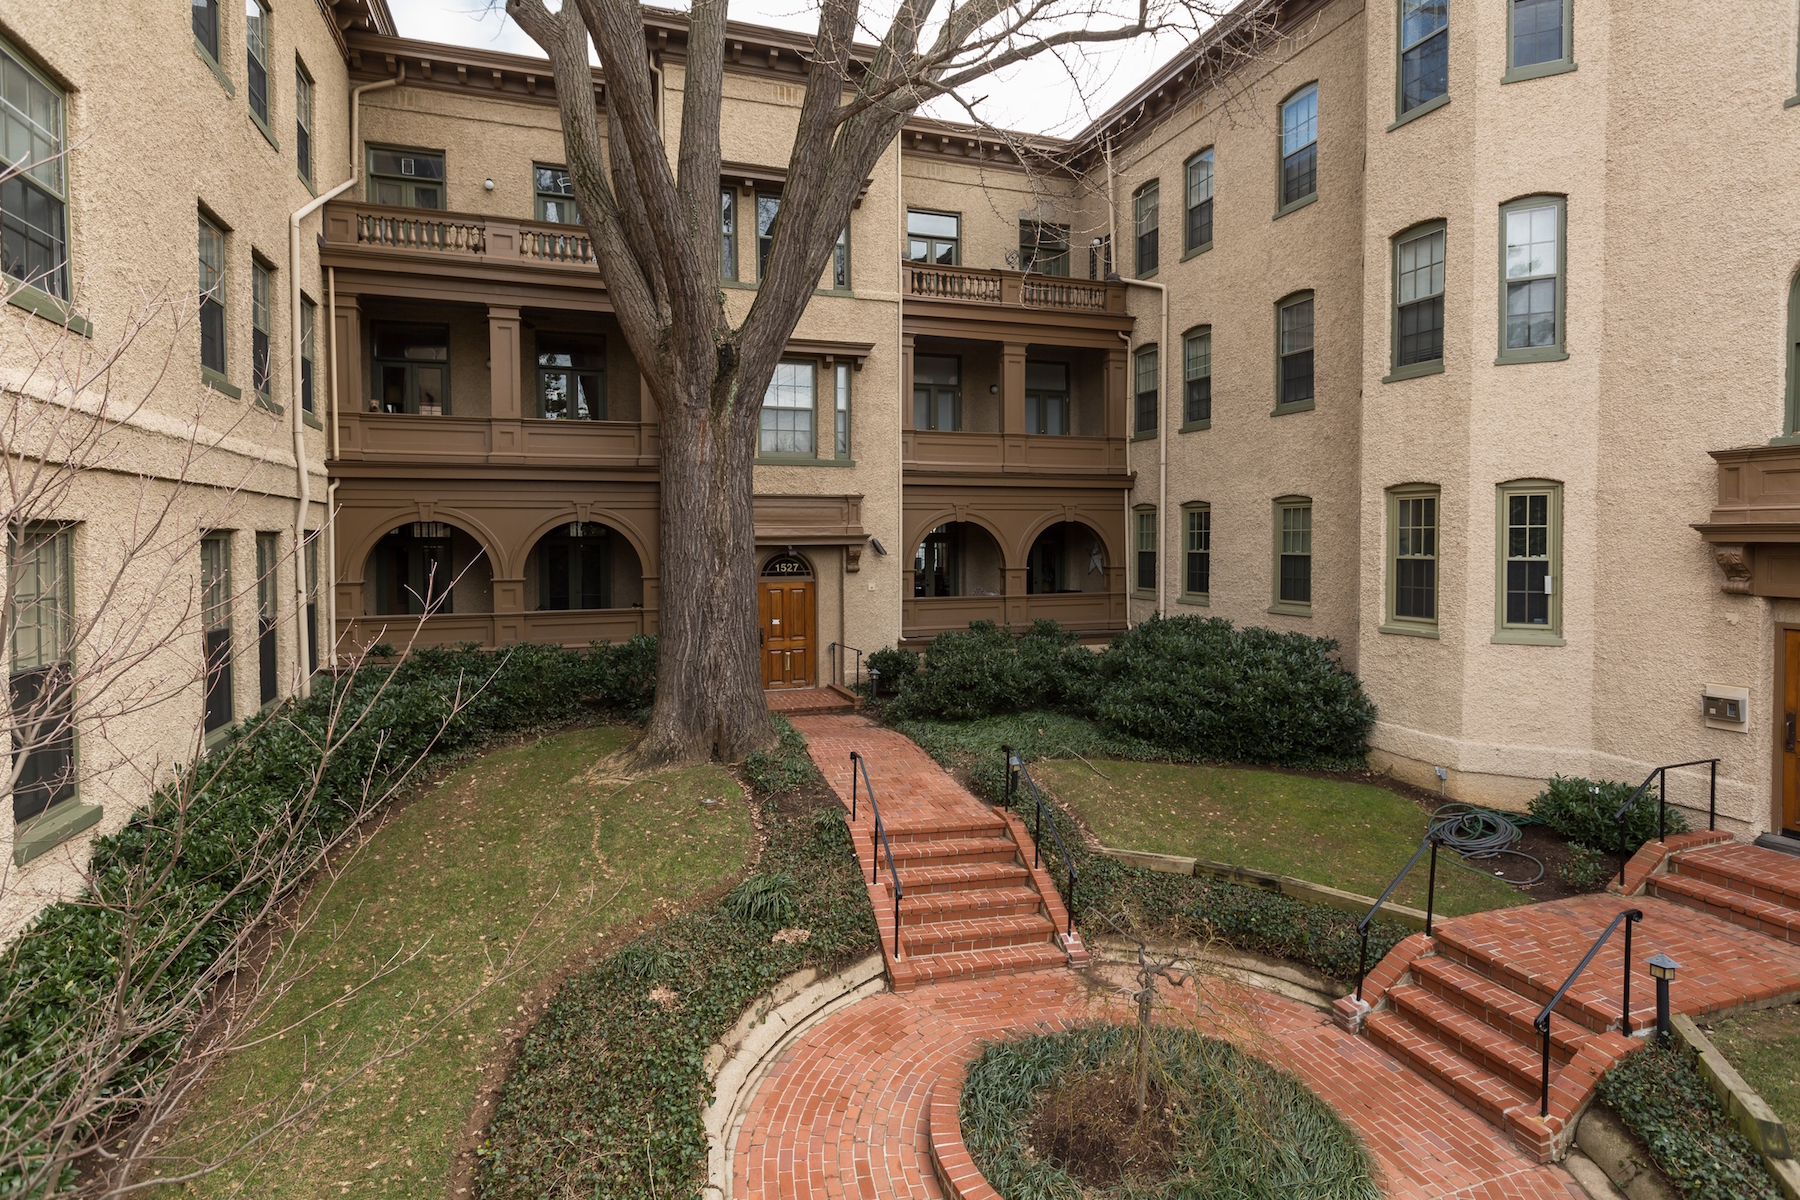 Additional photo for property listing at Rarely Available: Historic Georgetown Condominium 1527 30th Street Nw B21 Washington, コロンビア特別区 20007 アメリカ合衆国